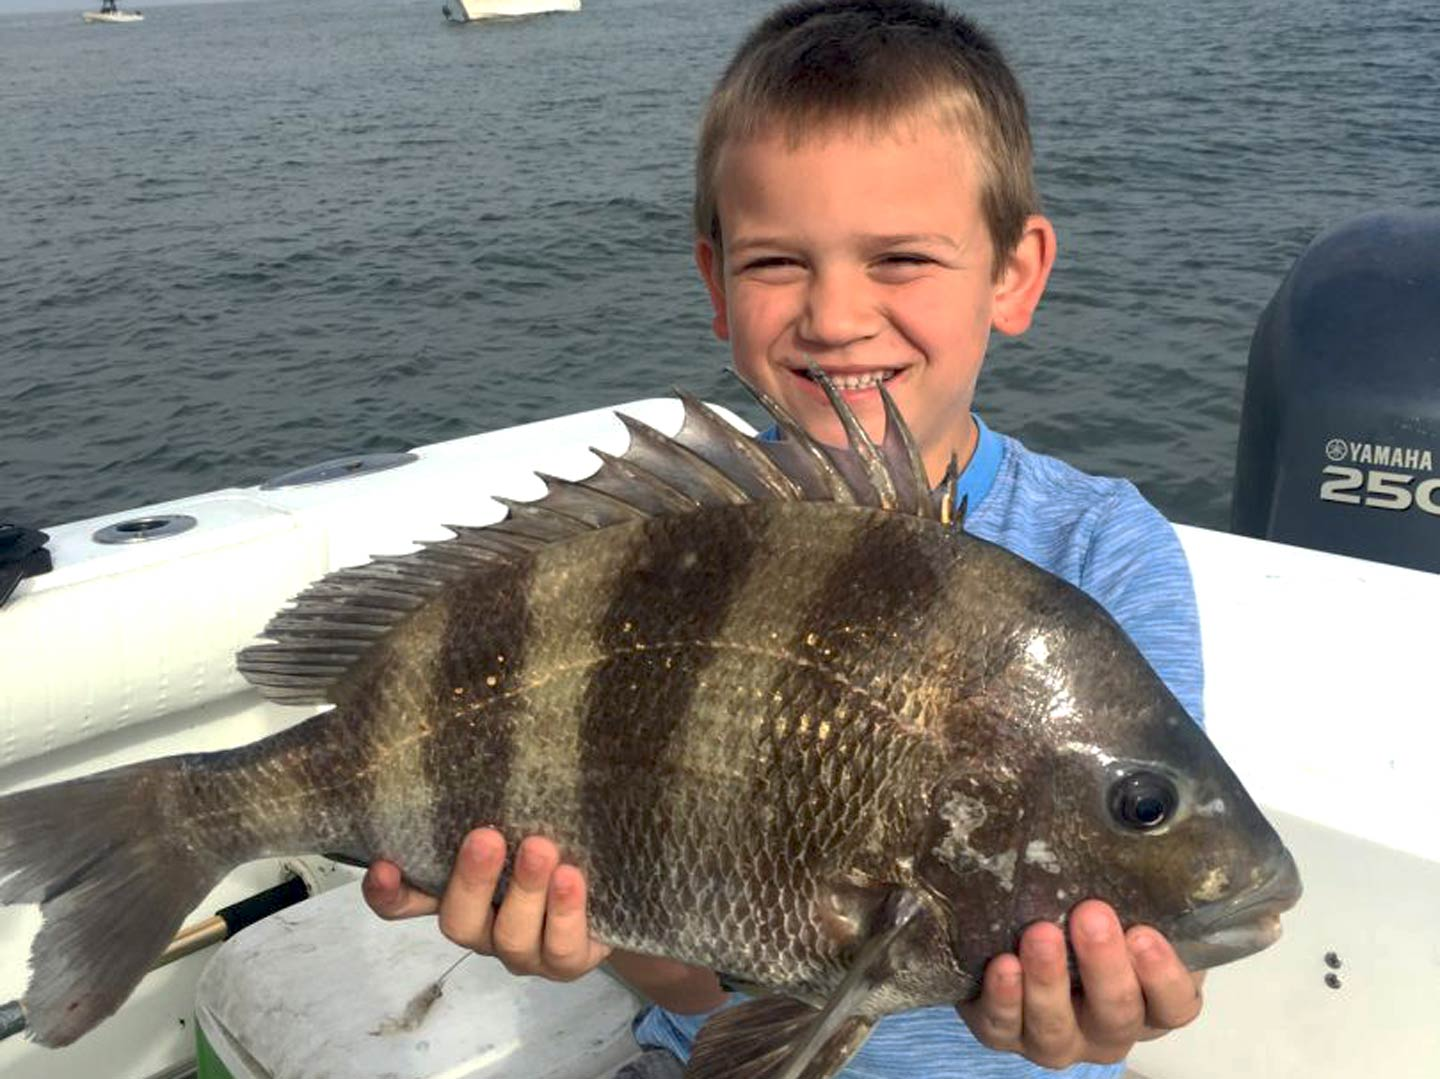 A happy kid holding a Sheepshead on a boat